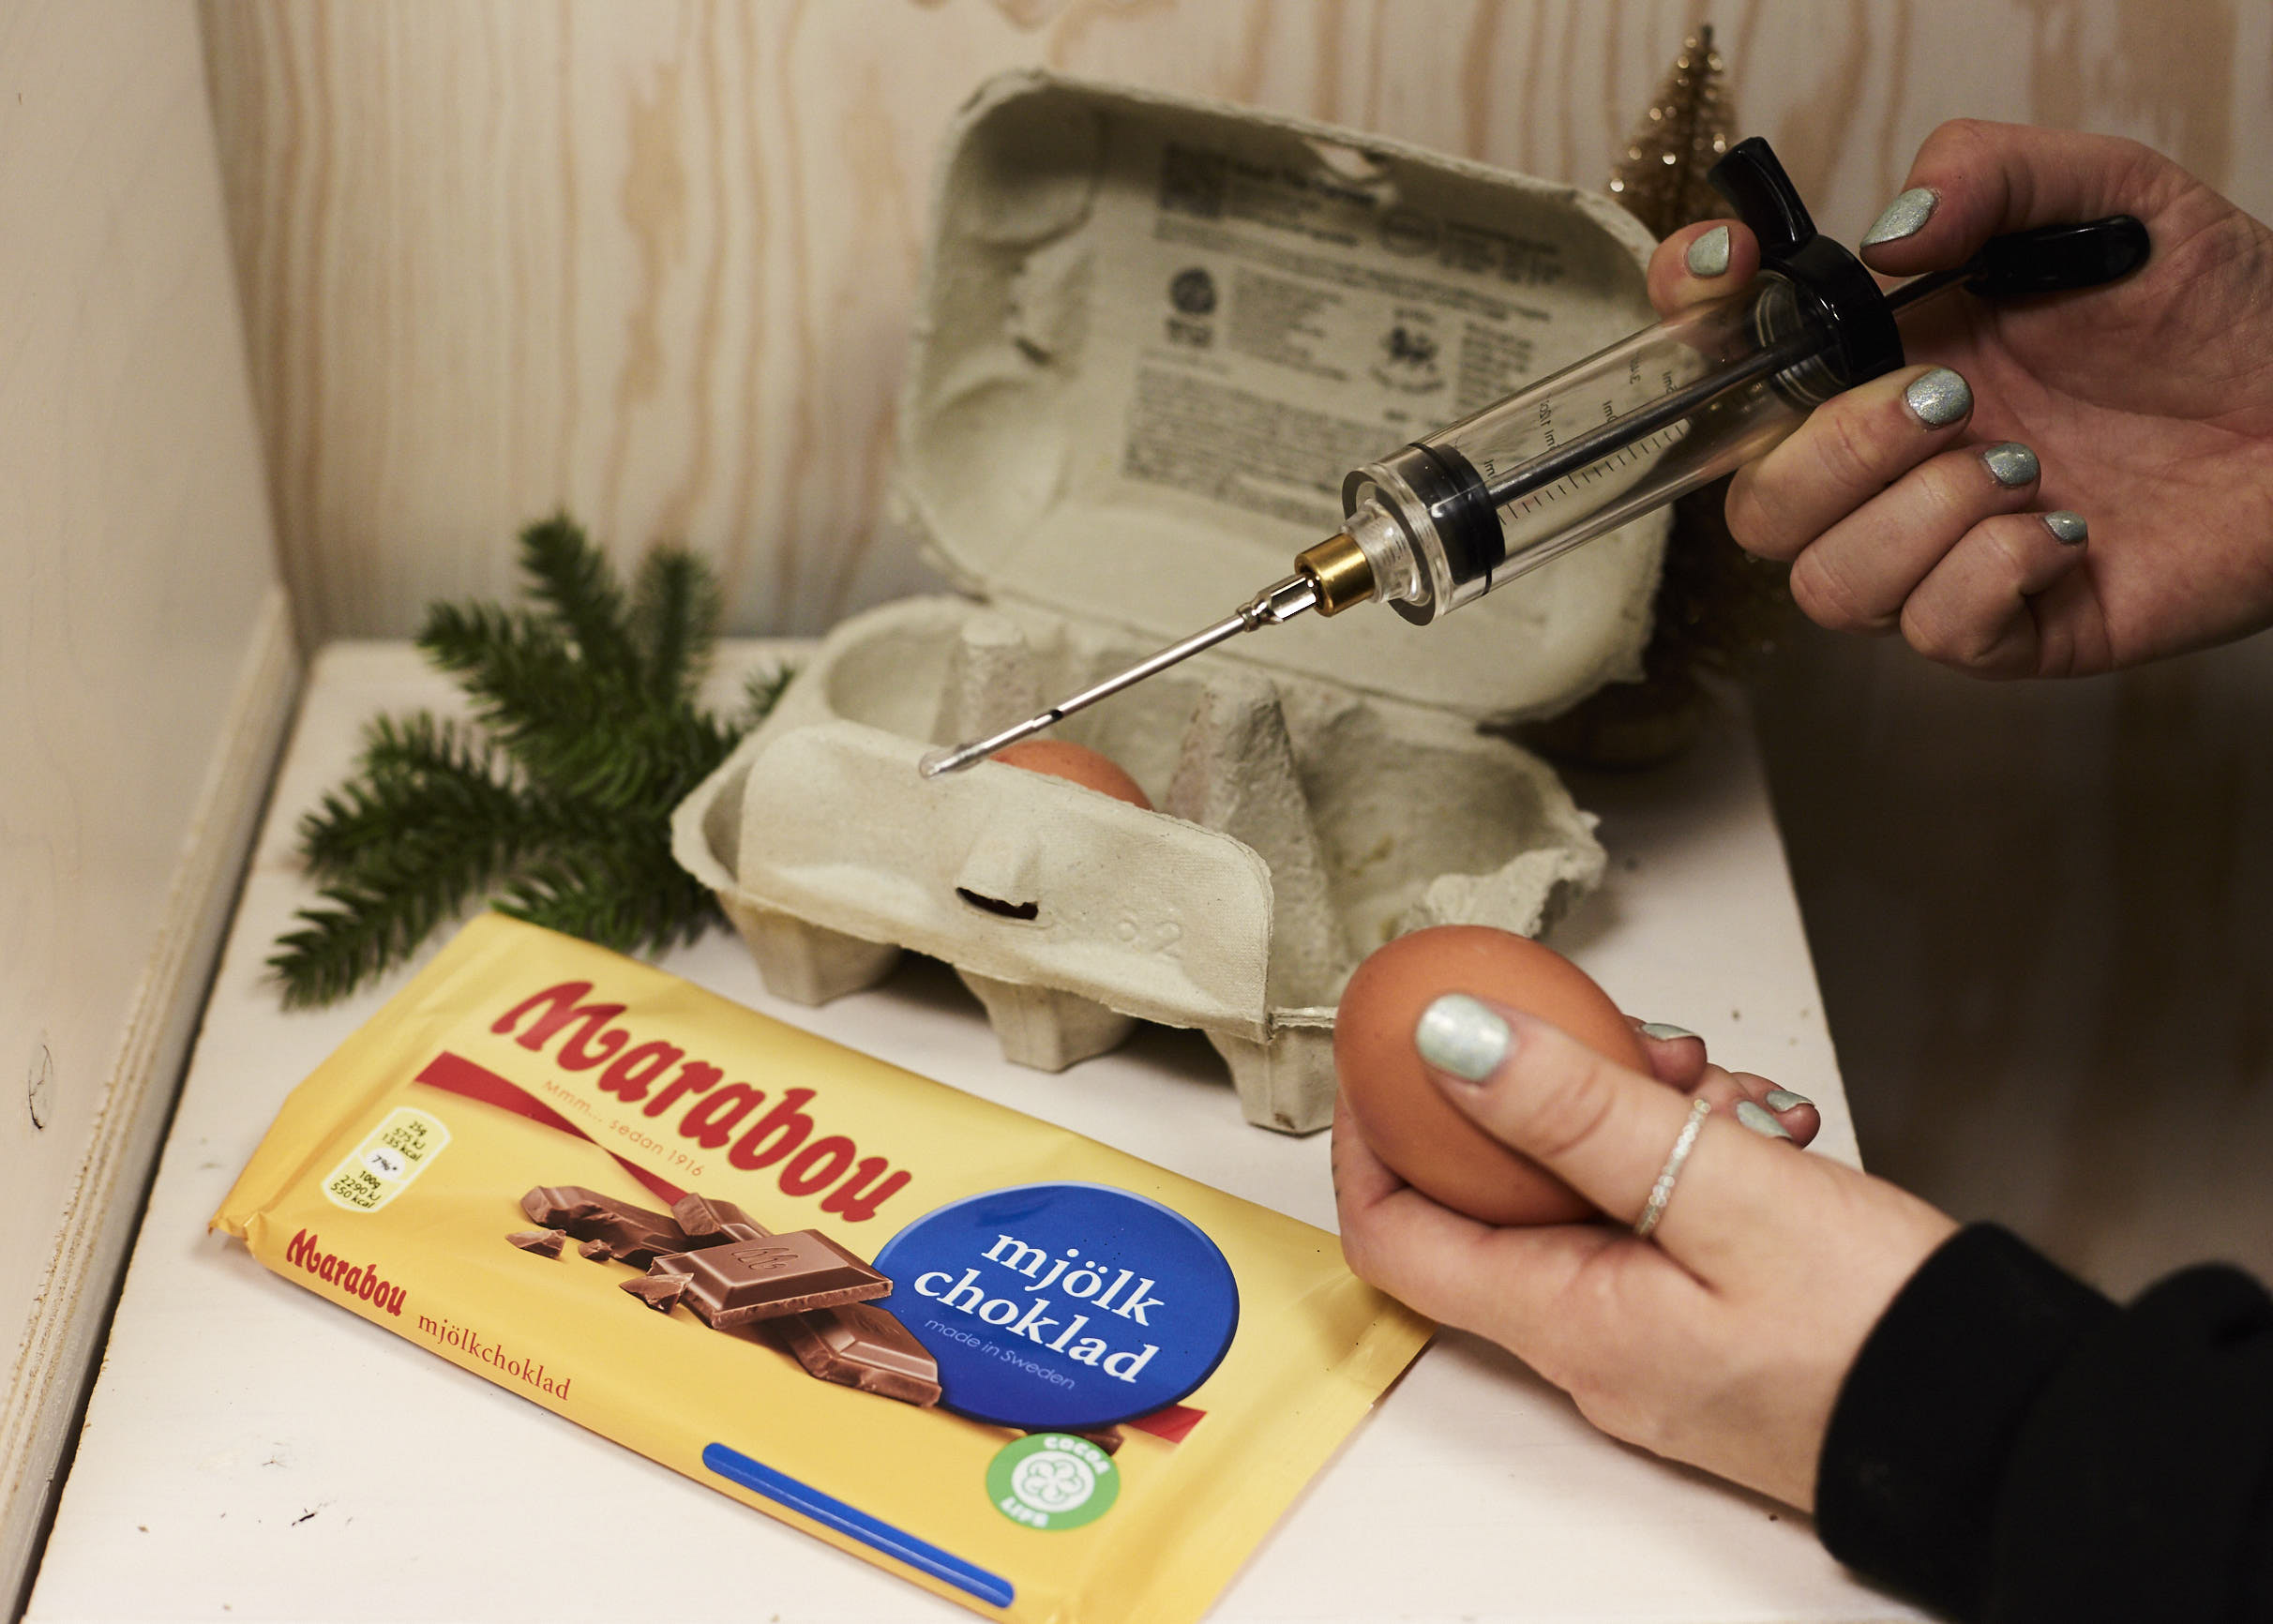 4 Christmas Hacks from Clas Ohlson